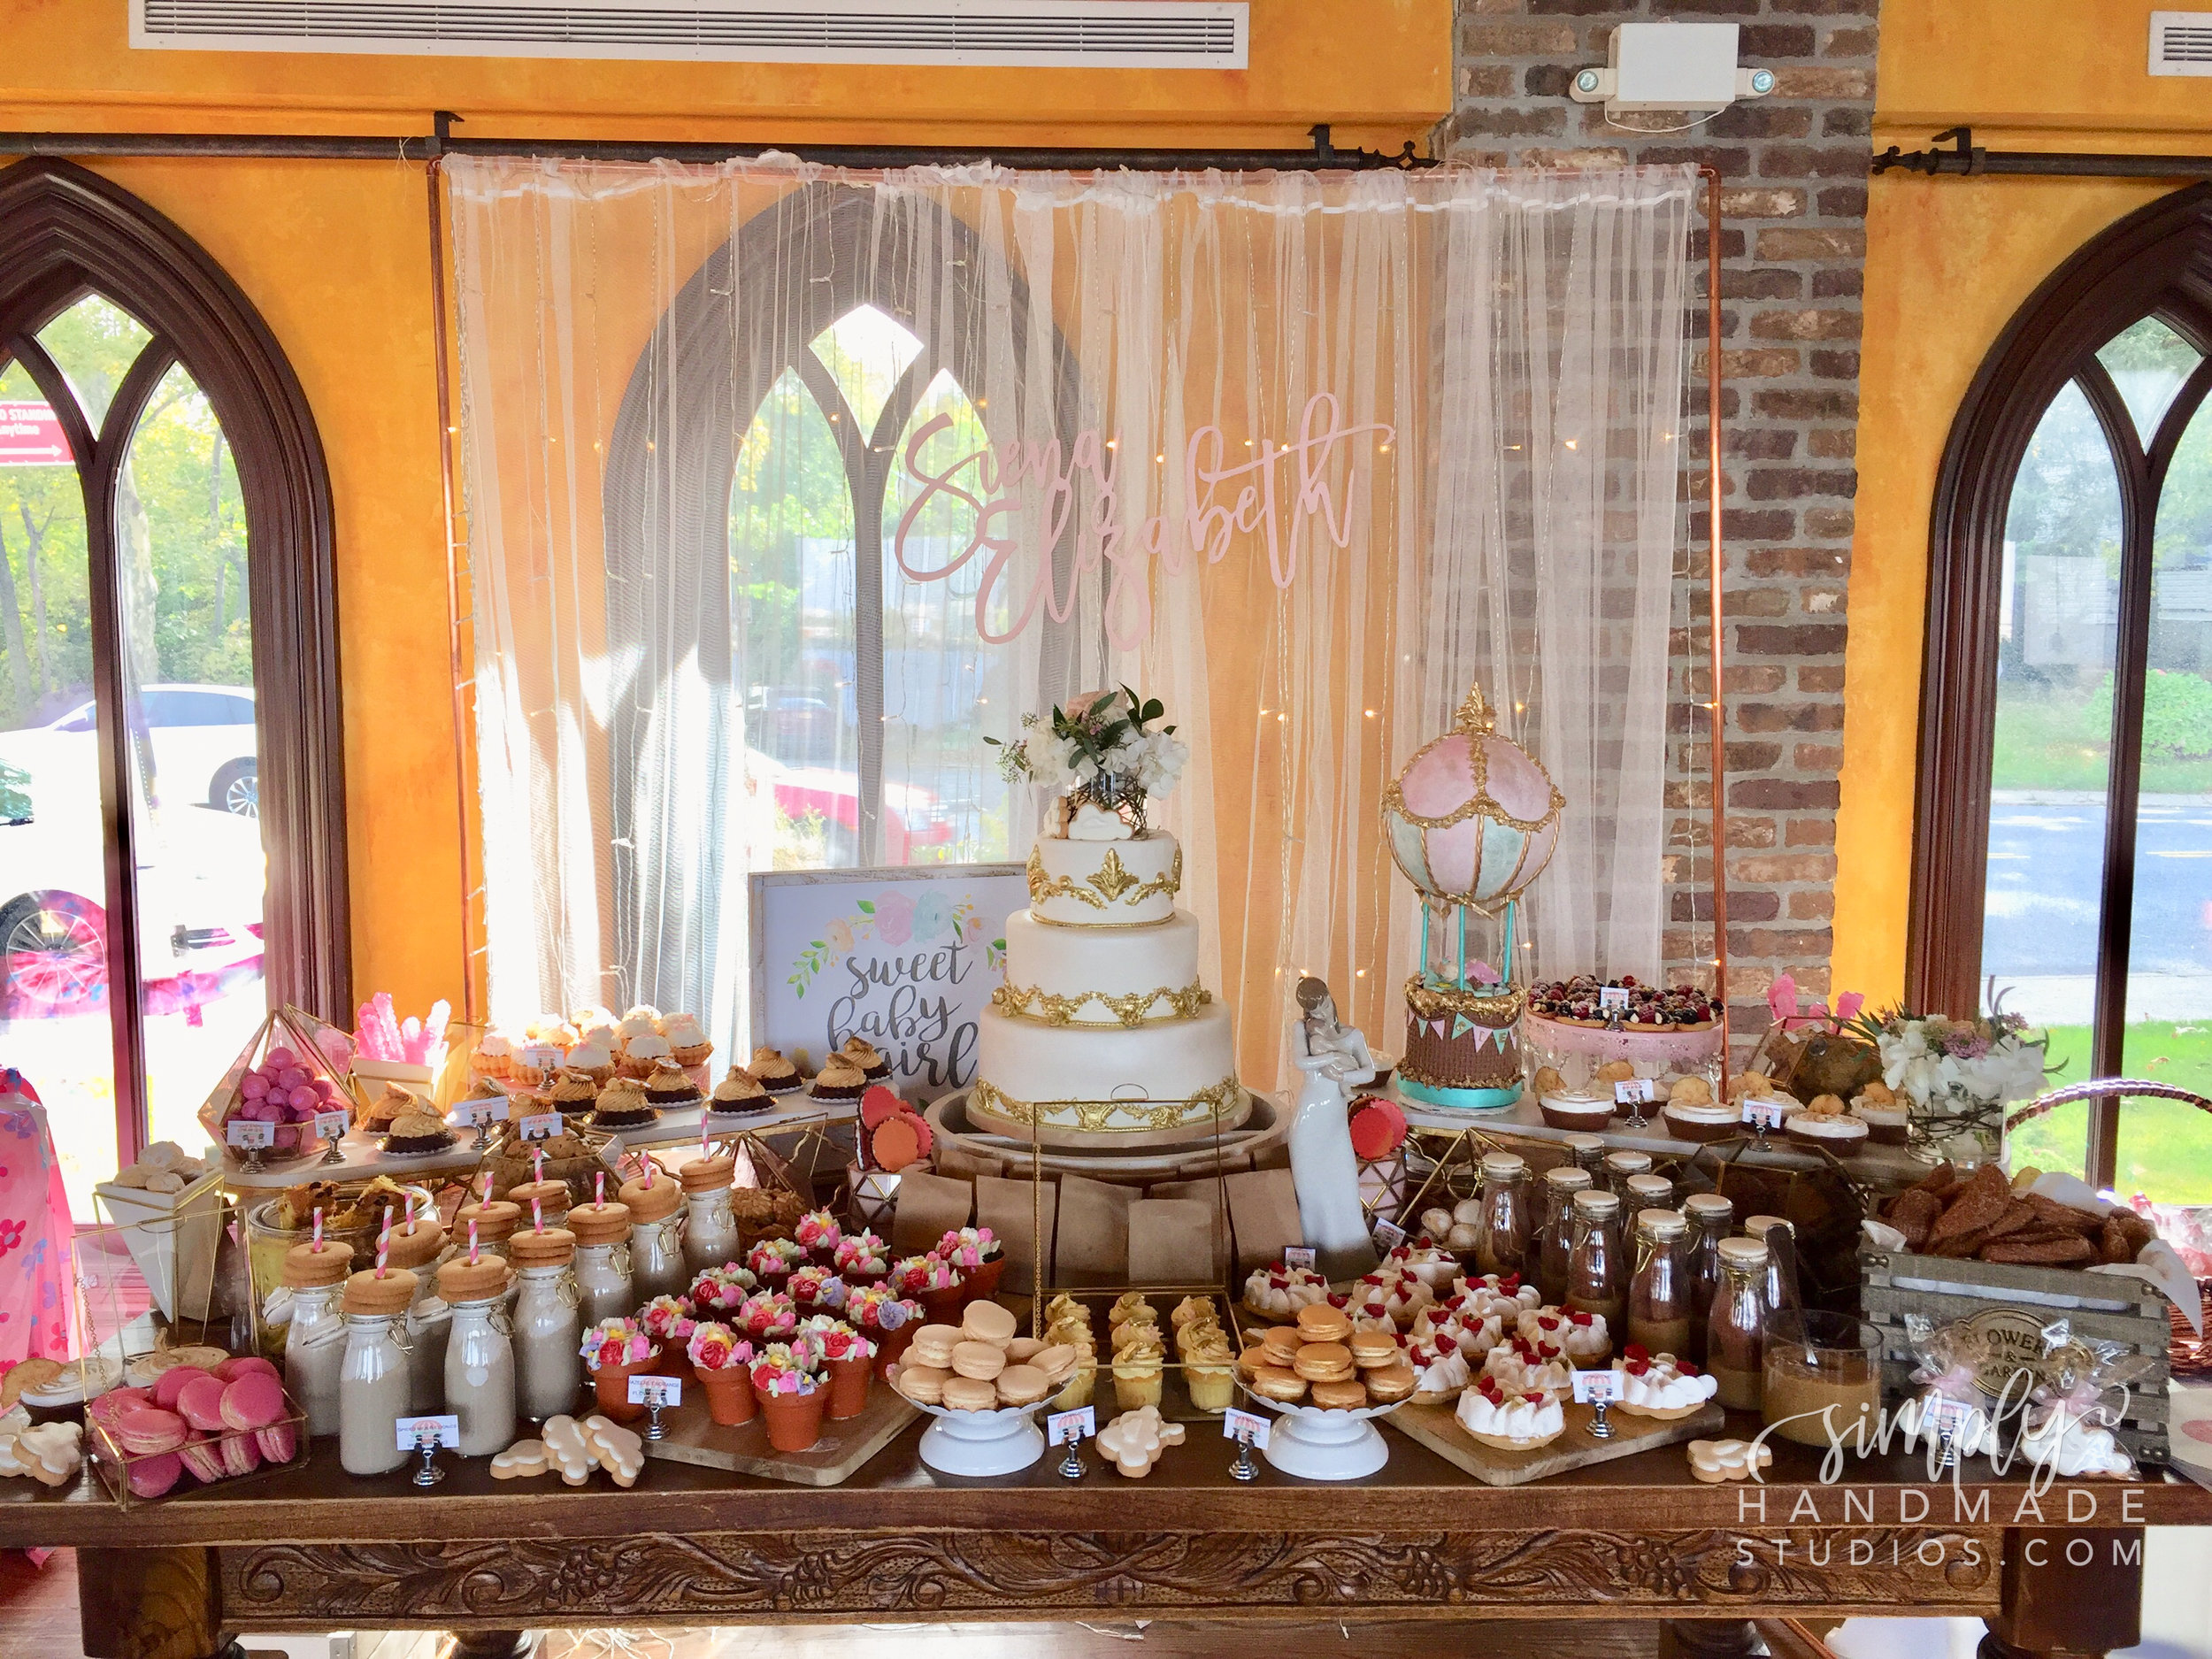 Isn't this cake table stunning? Check out Bruno's Bakery & Restaurant (@brunosnyc) if you're in the NYC area! Their food is a-mazing!